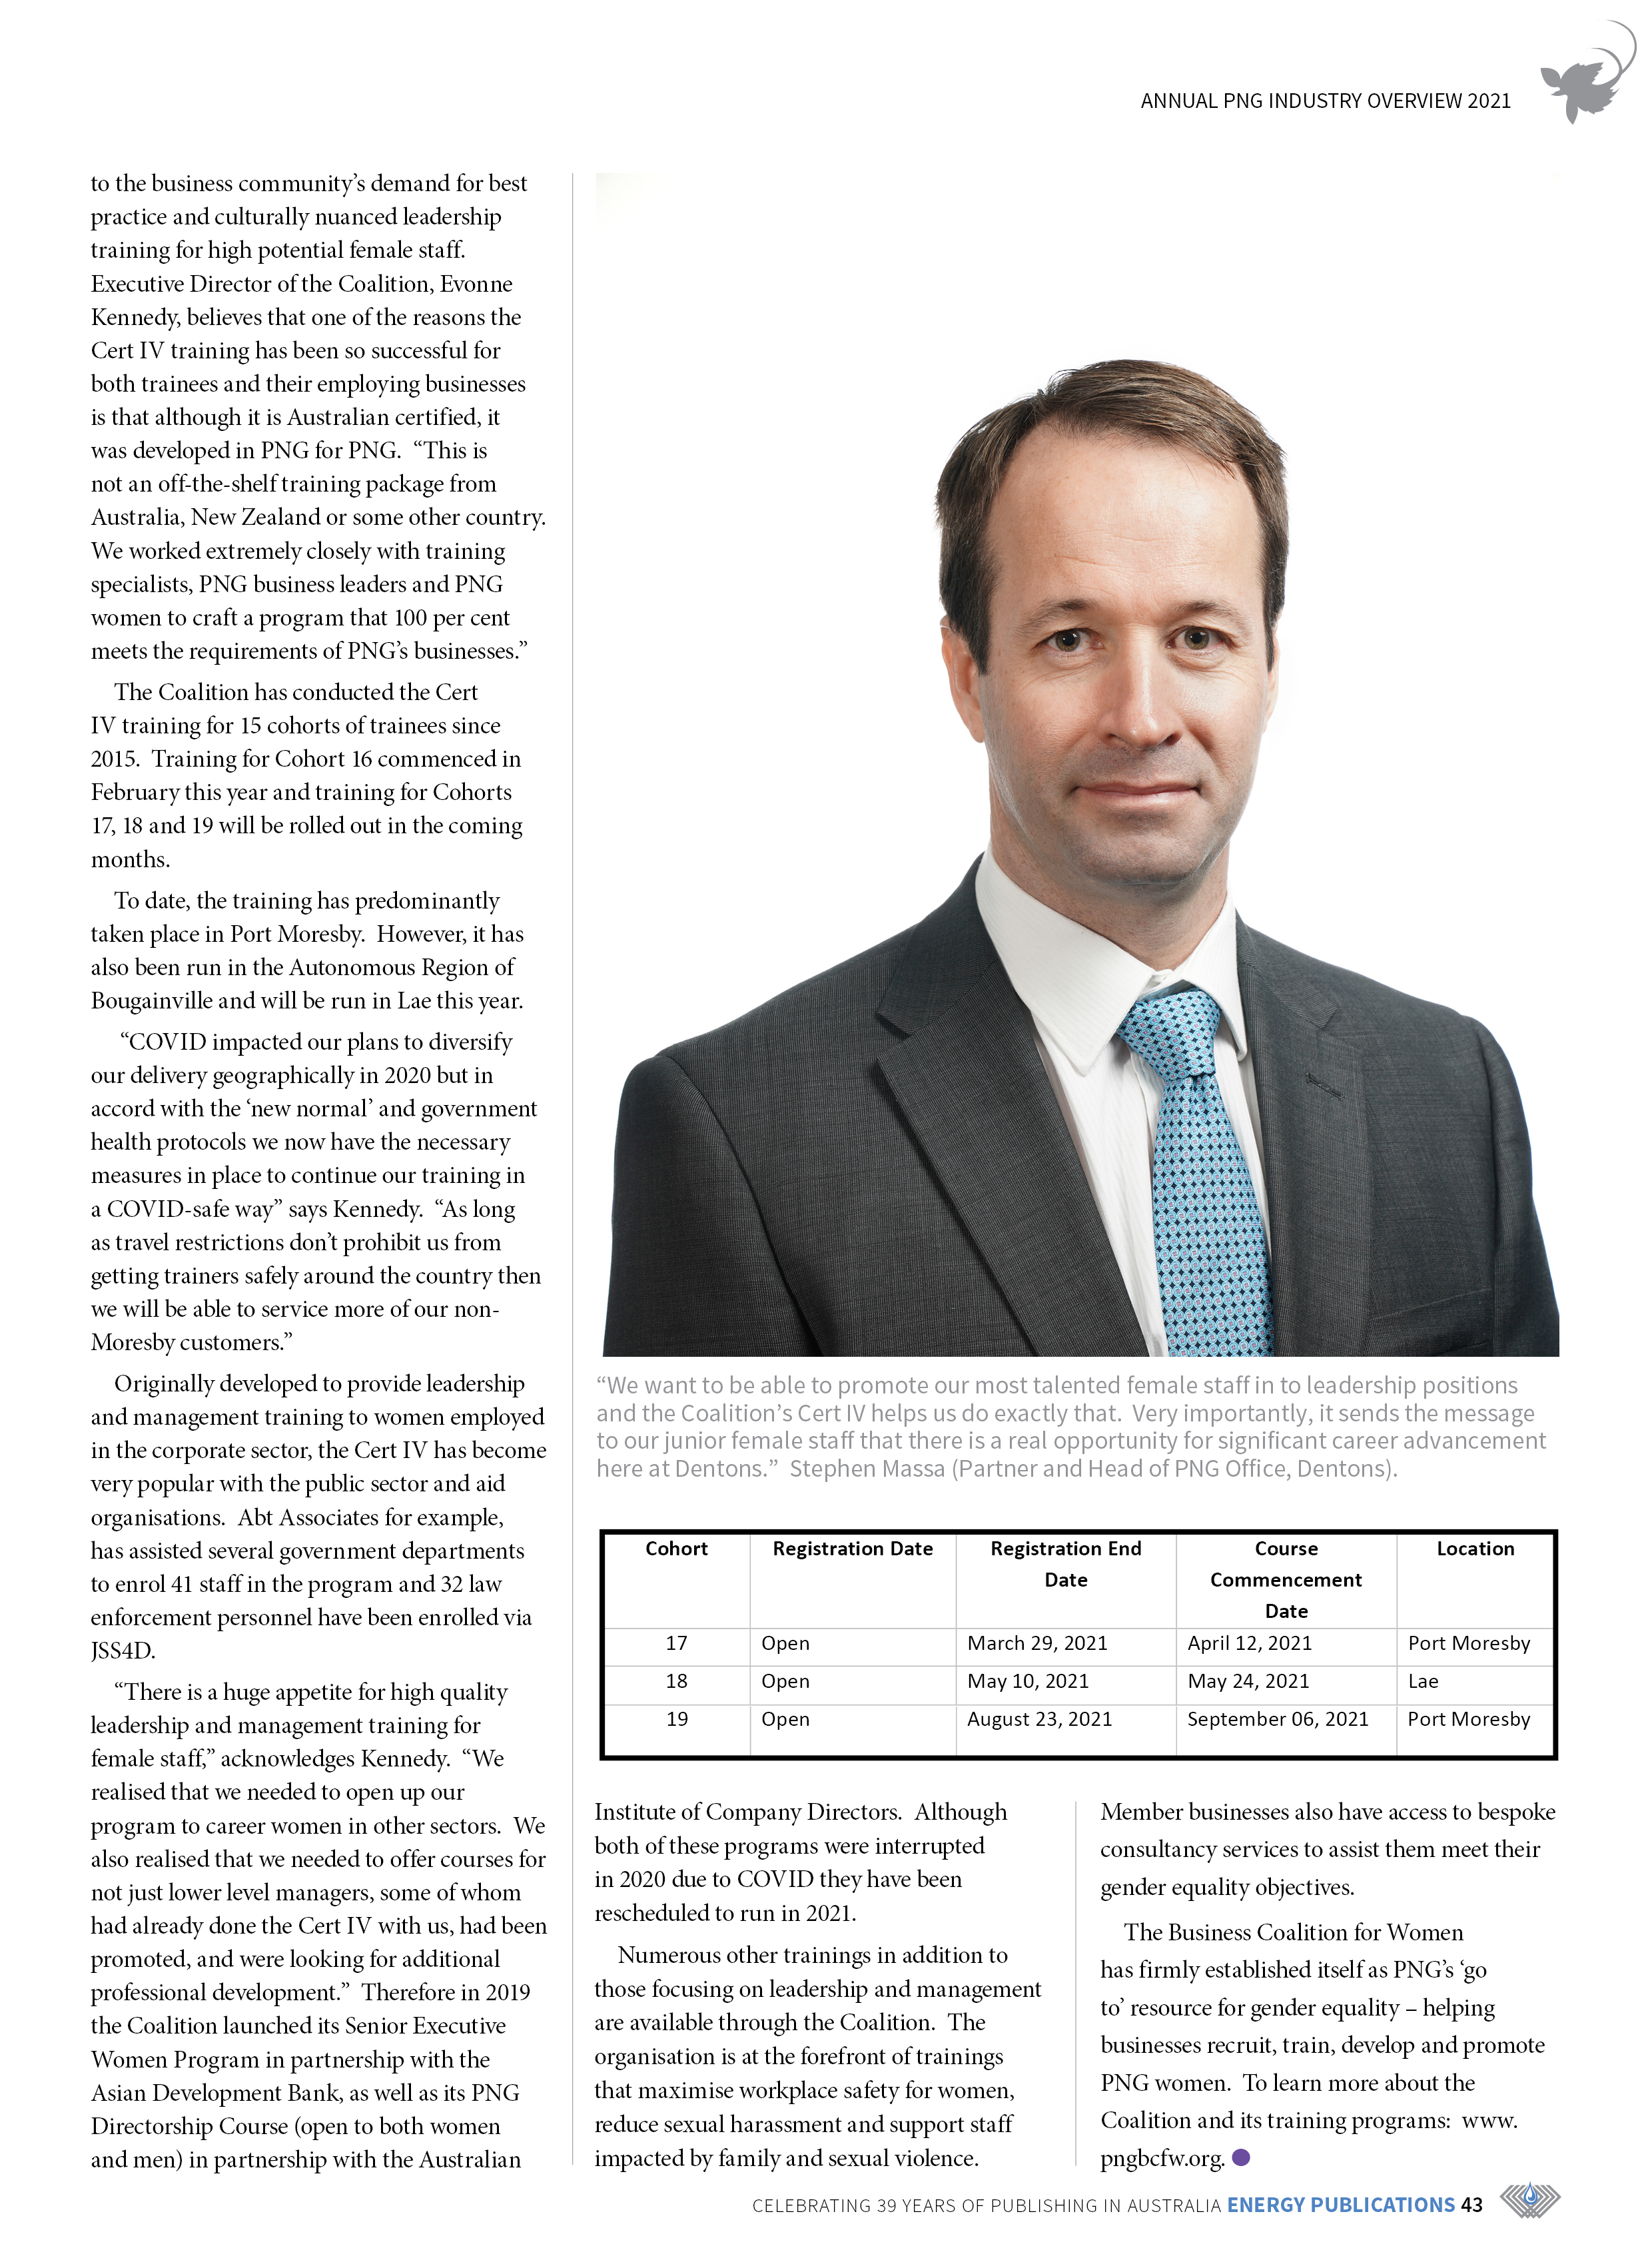 PNG Annual Industry Overview 2021 – Page 45